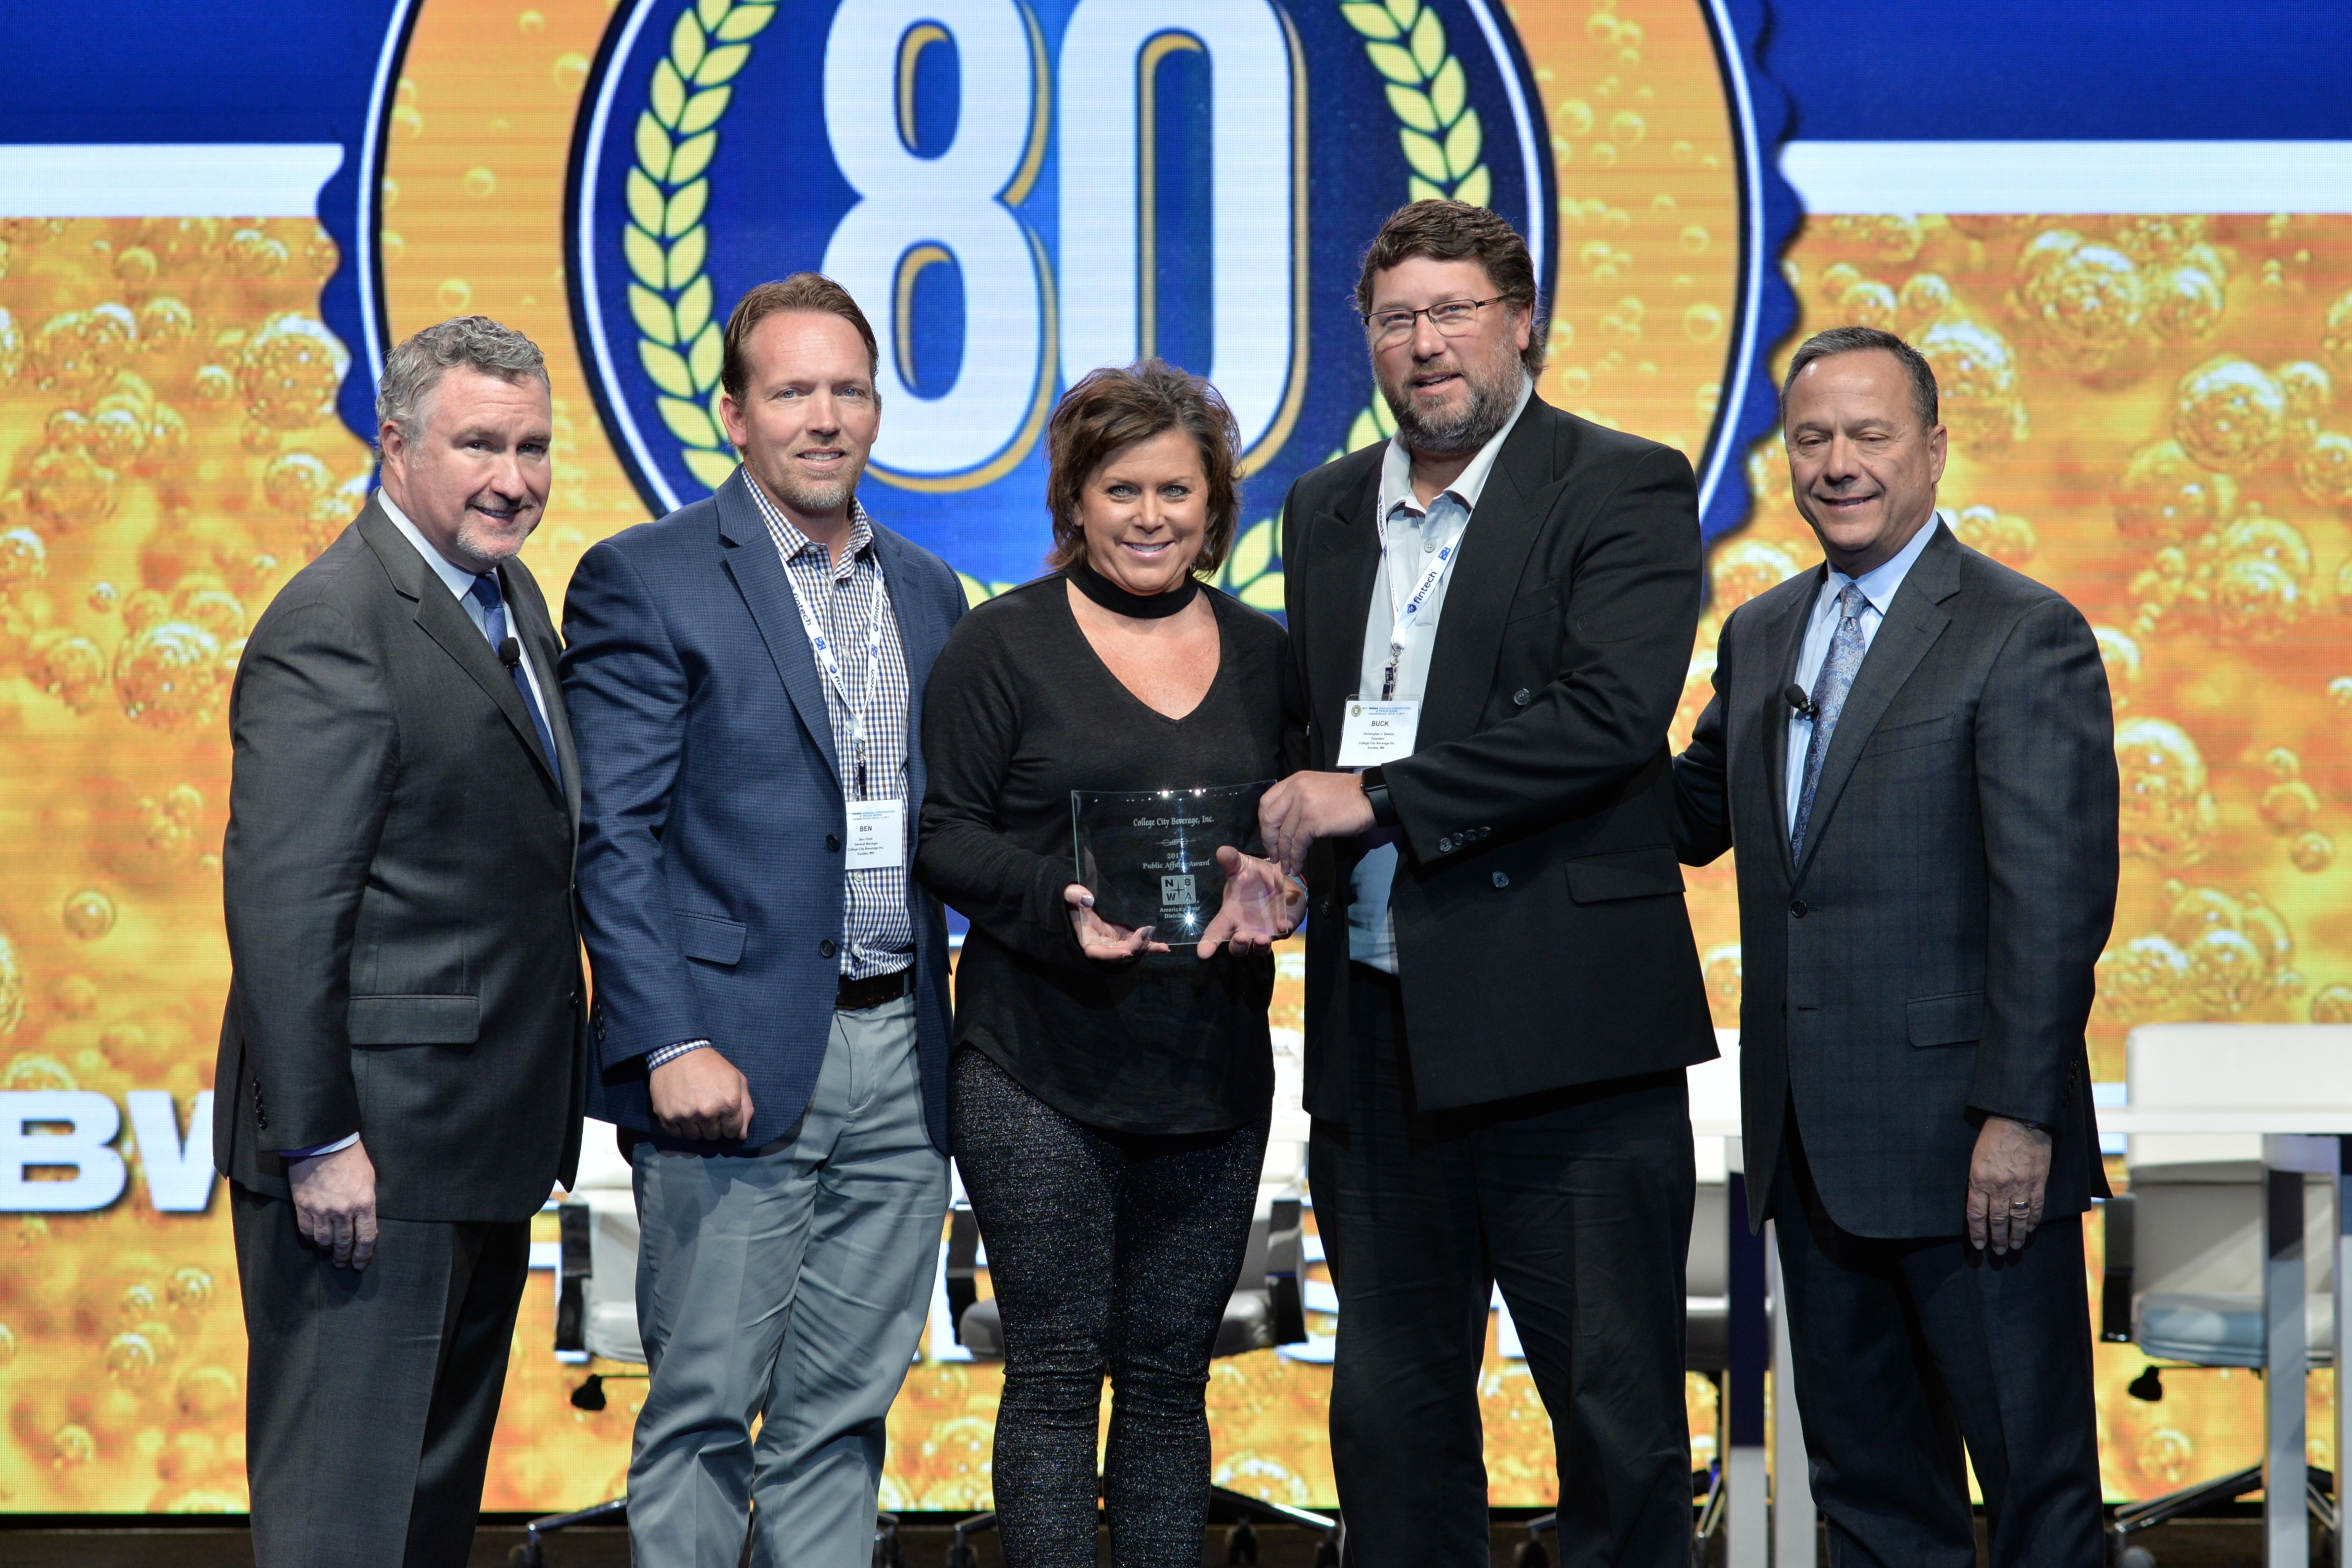 Brand Yourself Client Receives National Public Affairs Award!